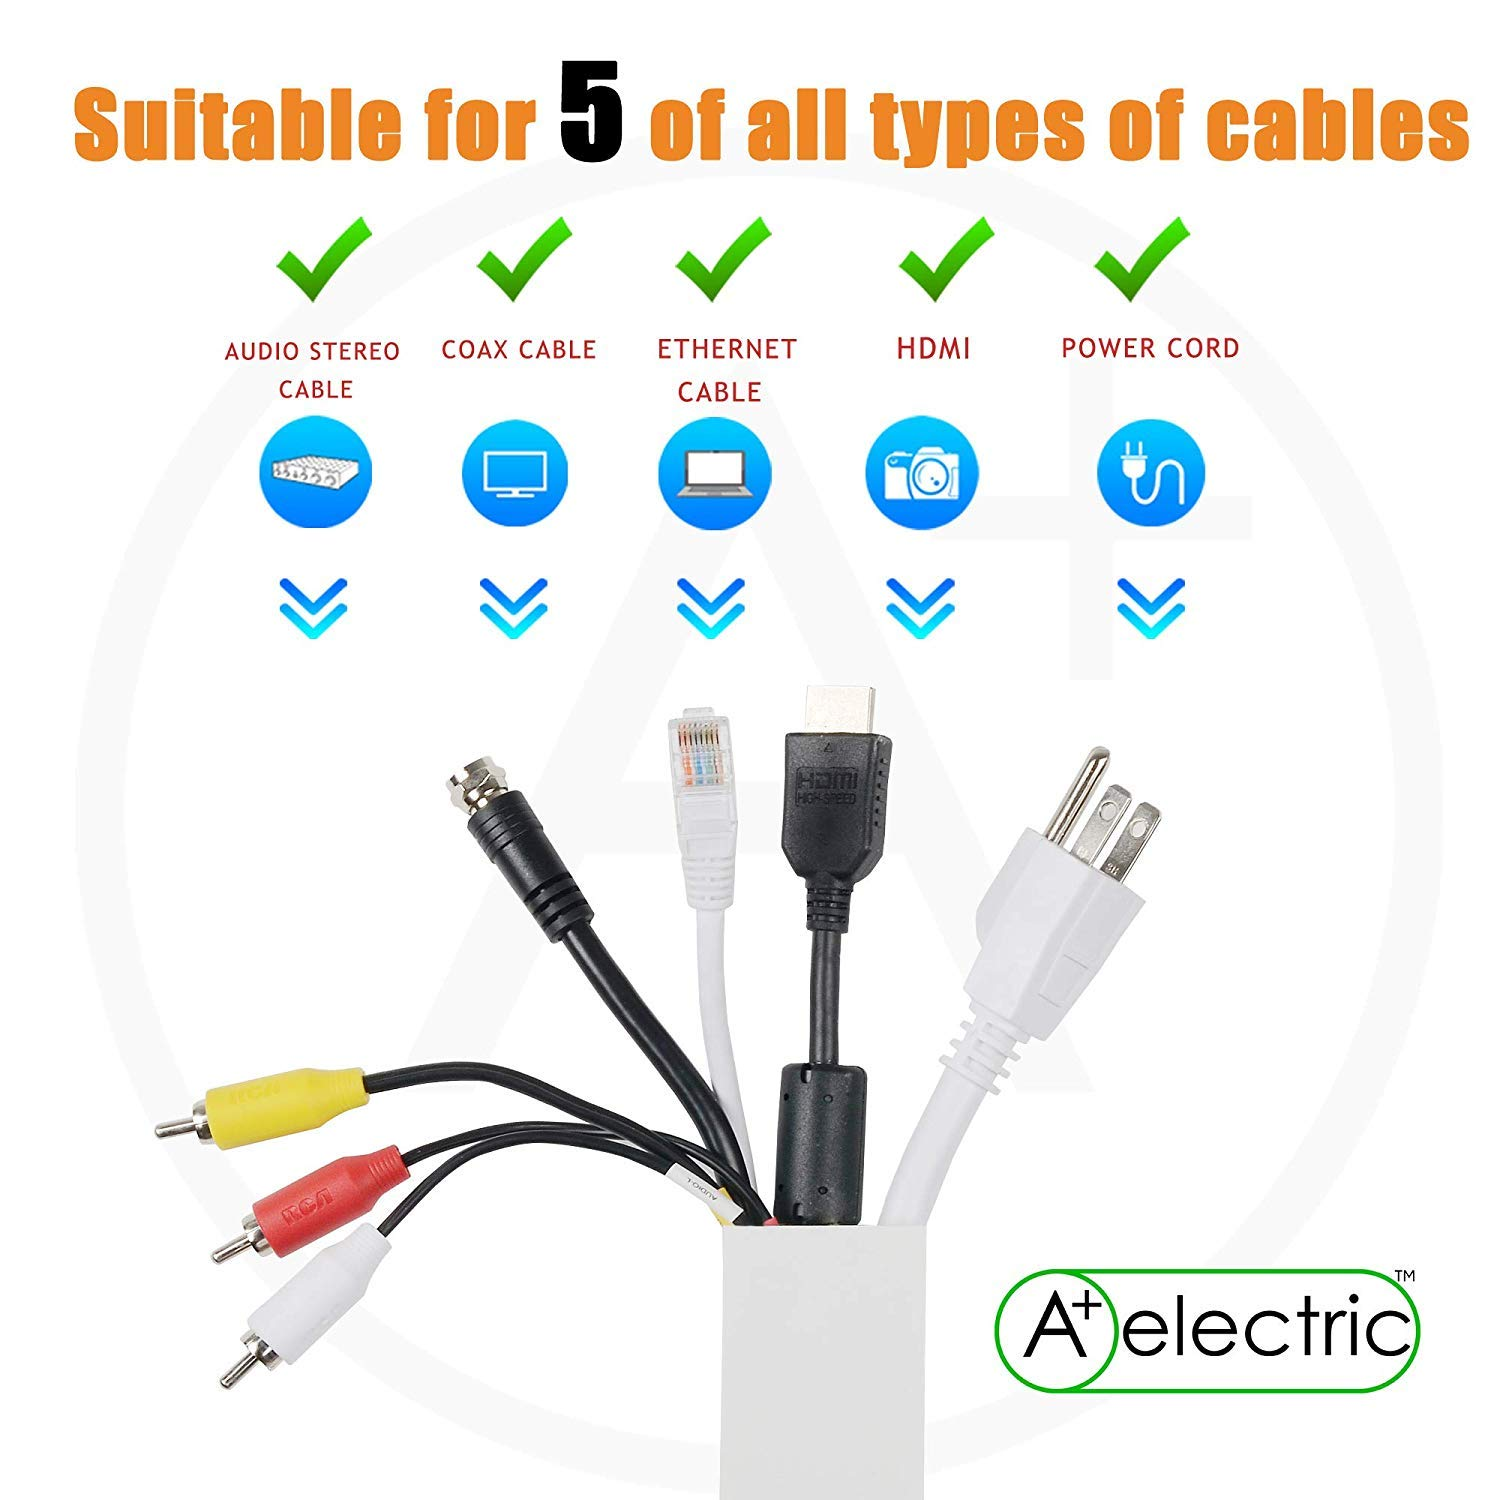 1.6 1.6 Cable Management kit Cord Organizer Channel-60,L 30,W40mm Quality Wire Hider for TV,Computers,Your Home or Office,Paintable Wall Mounted Cable Concealer,Do It Yourself Raceway ,H40mm